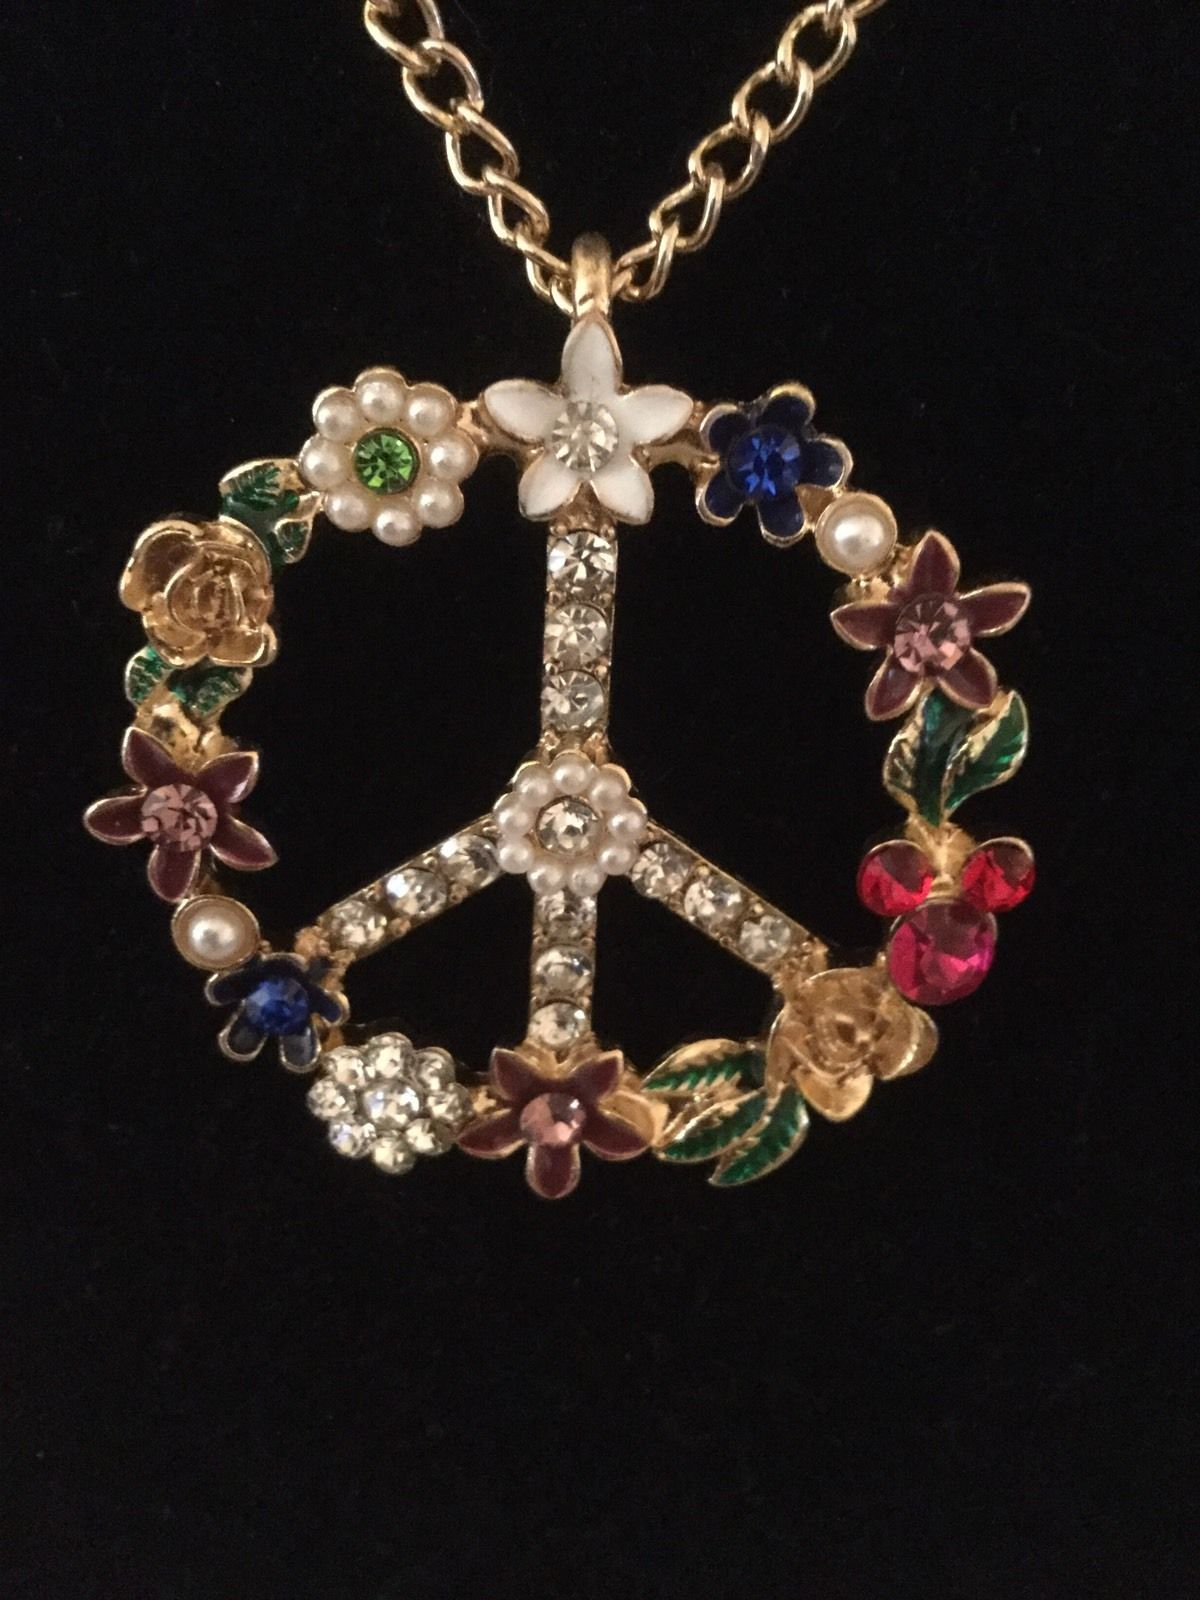 Betsey johnson huge peace sign pendant ebay jewelry pinterest betsey johnson huge peace sign pendant ebay mozeypictures Image collections